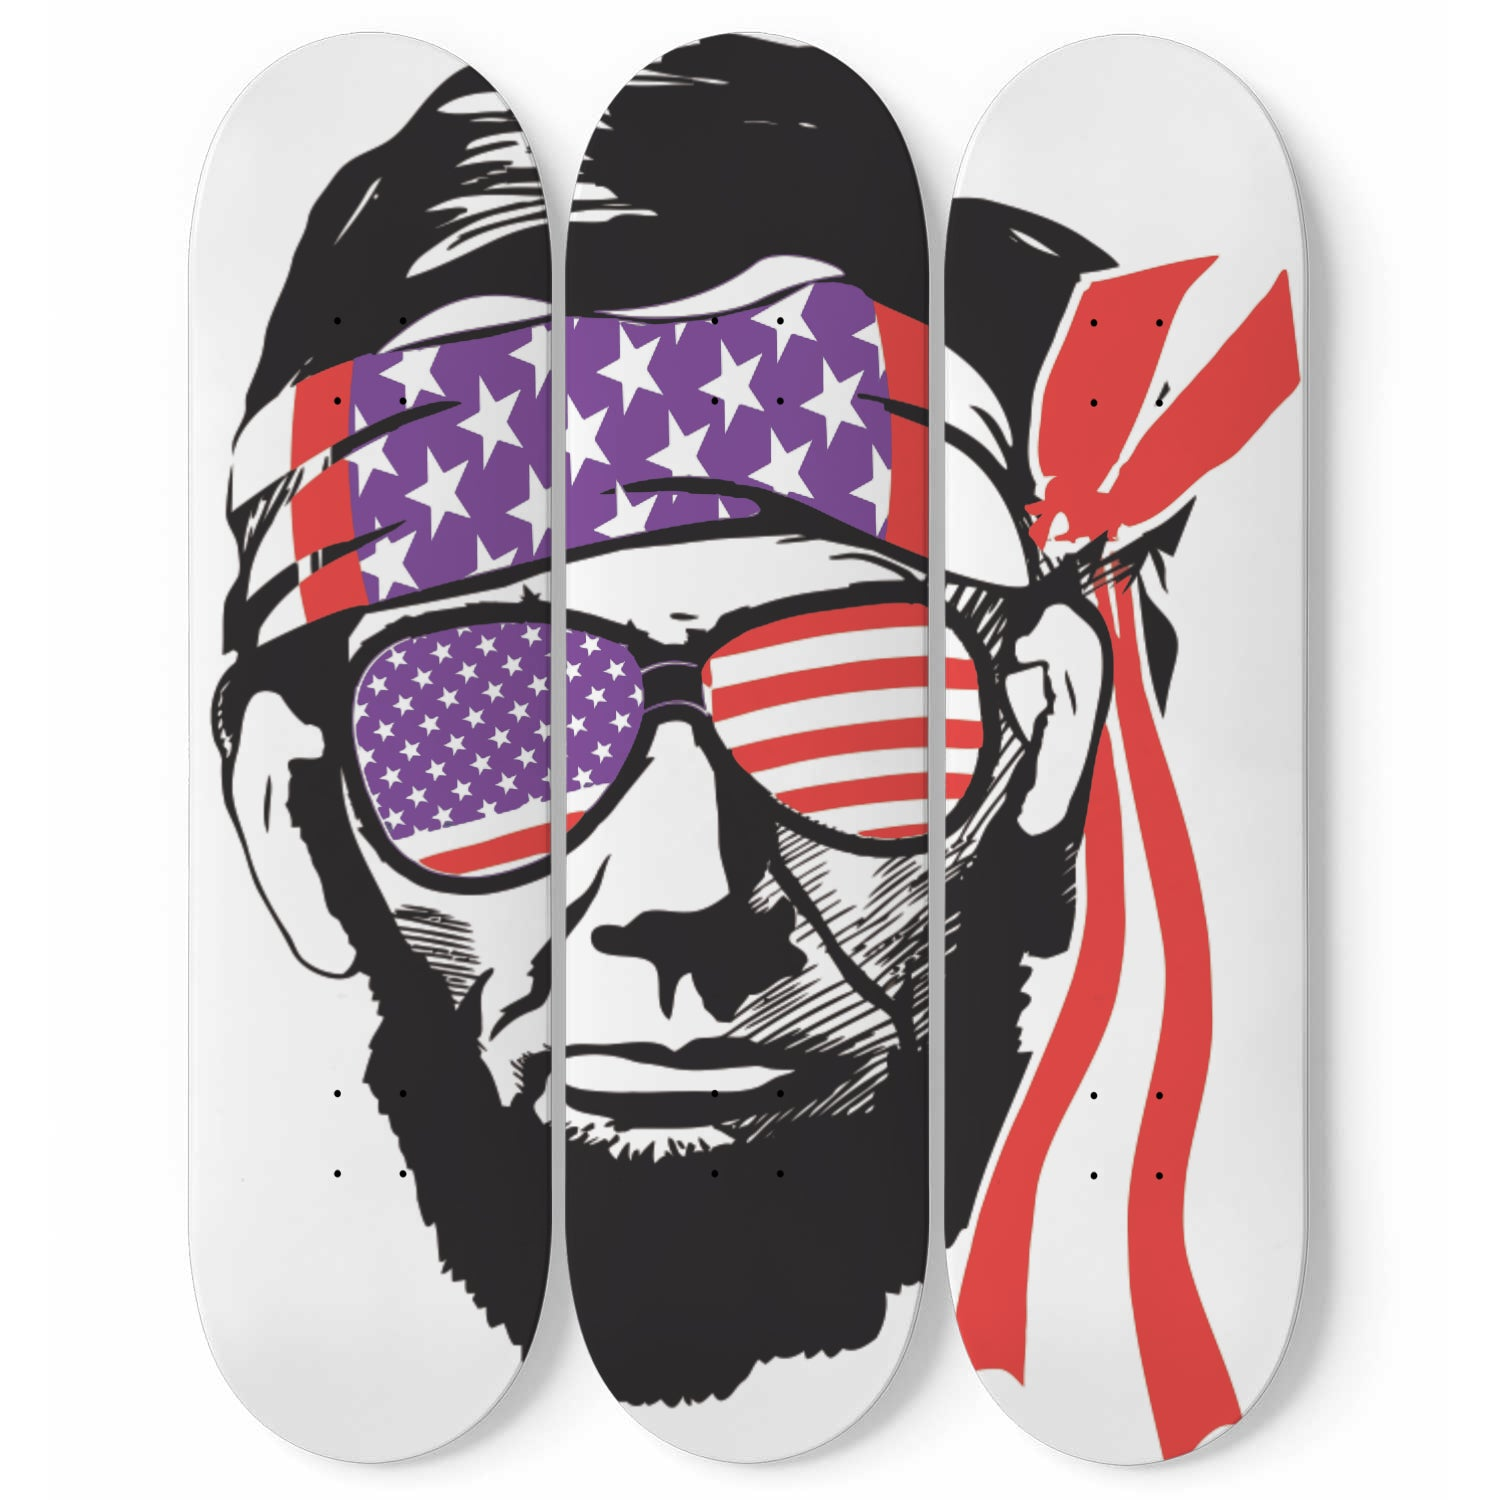 American Flag Portrait - Skateboard art mural